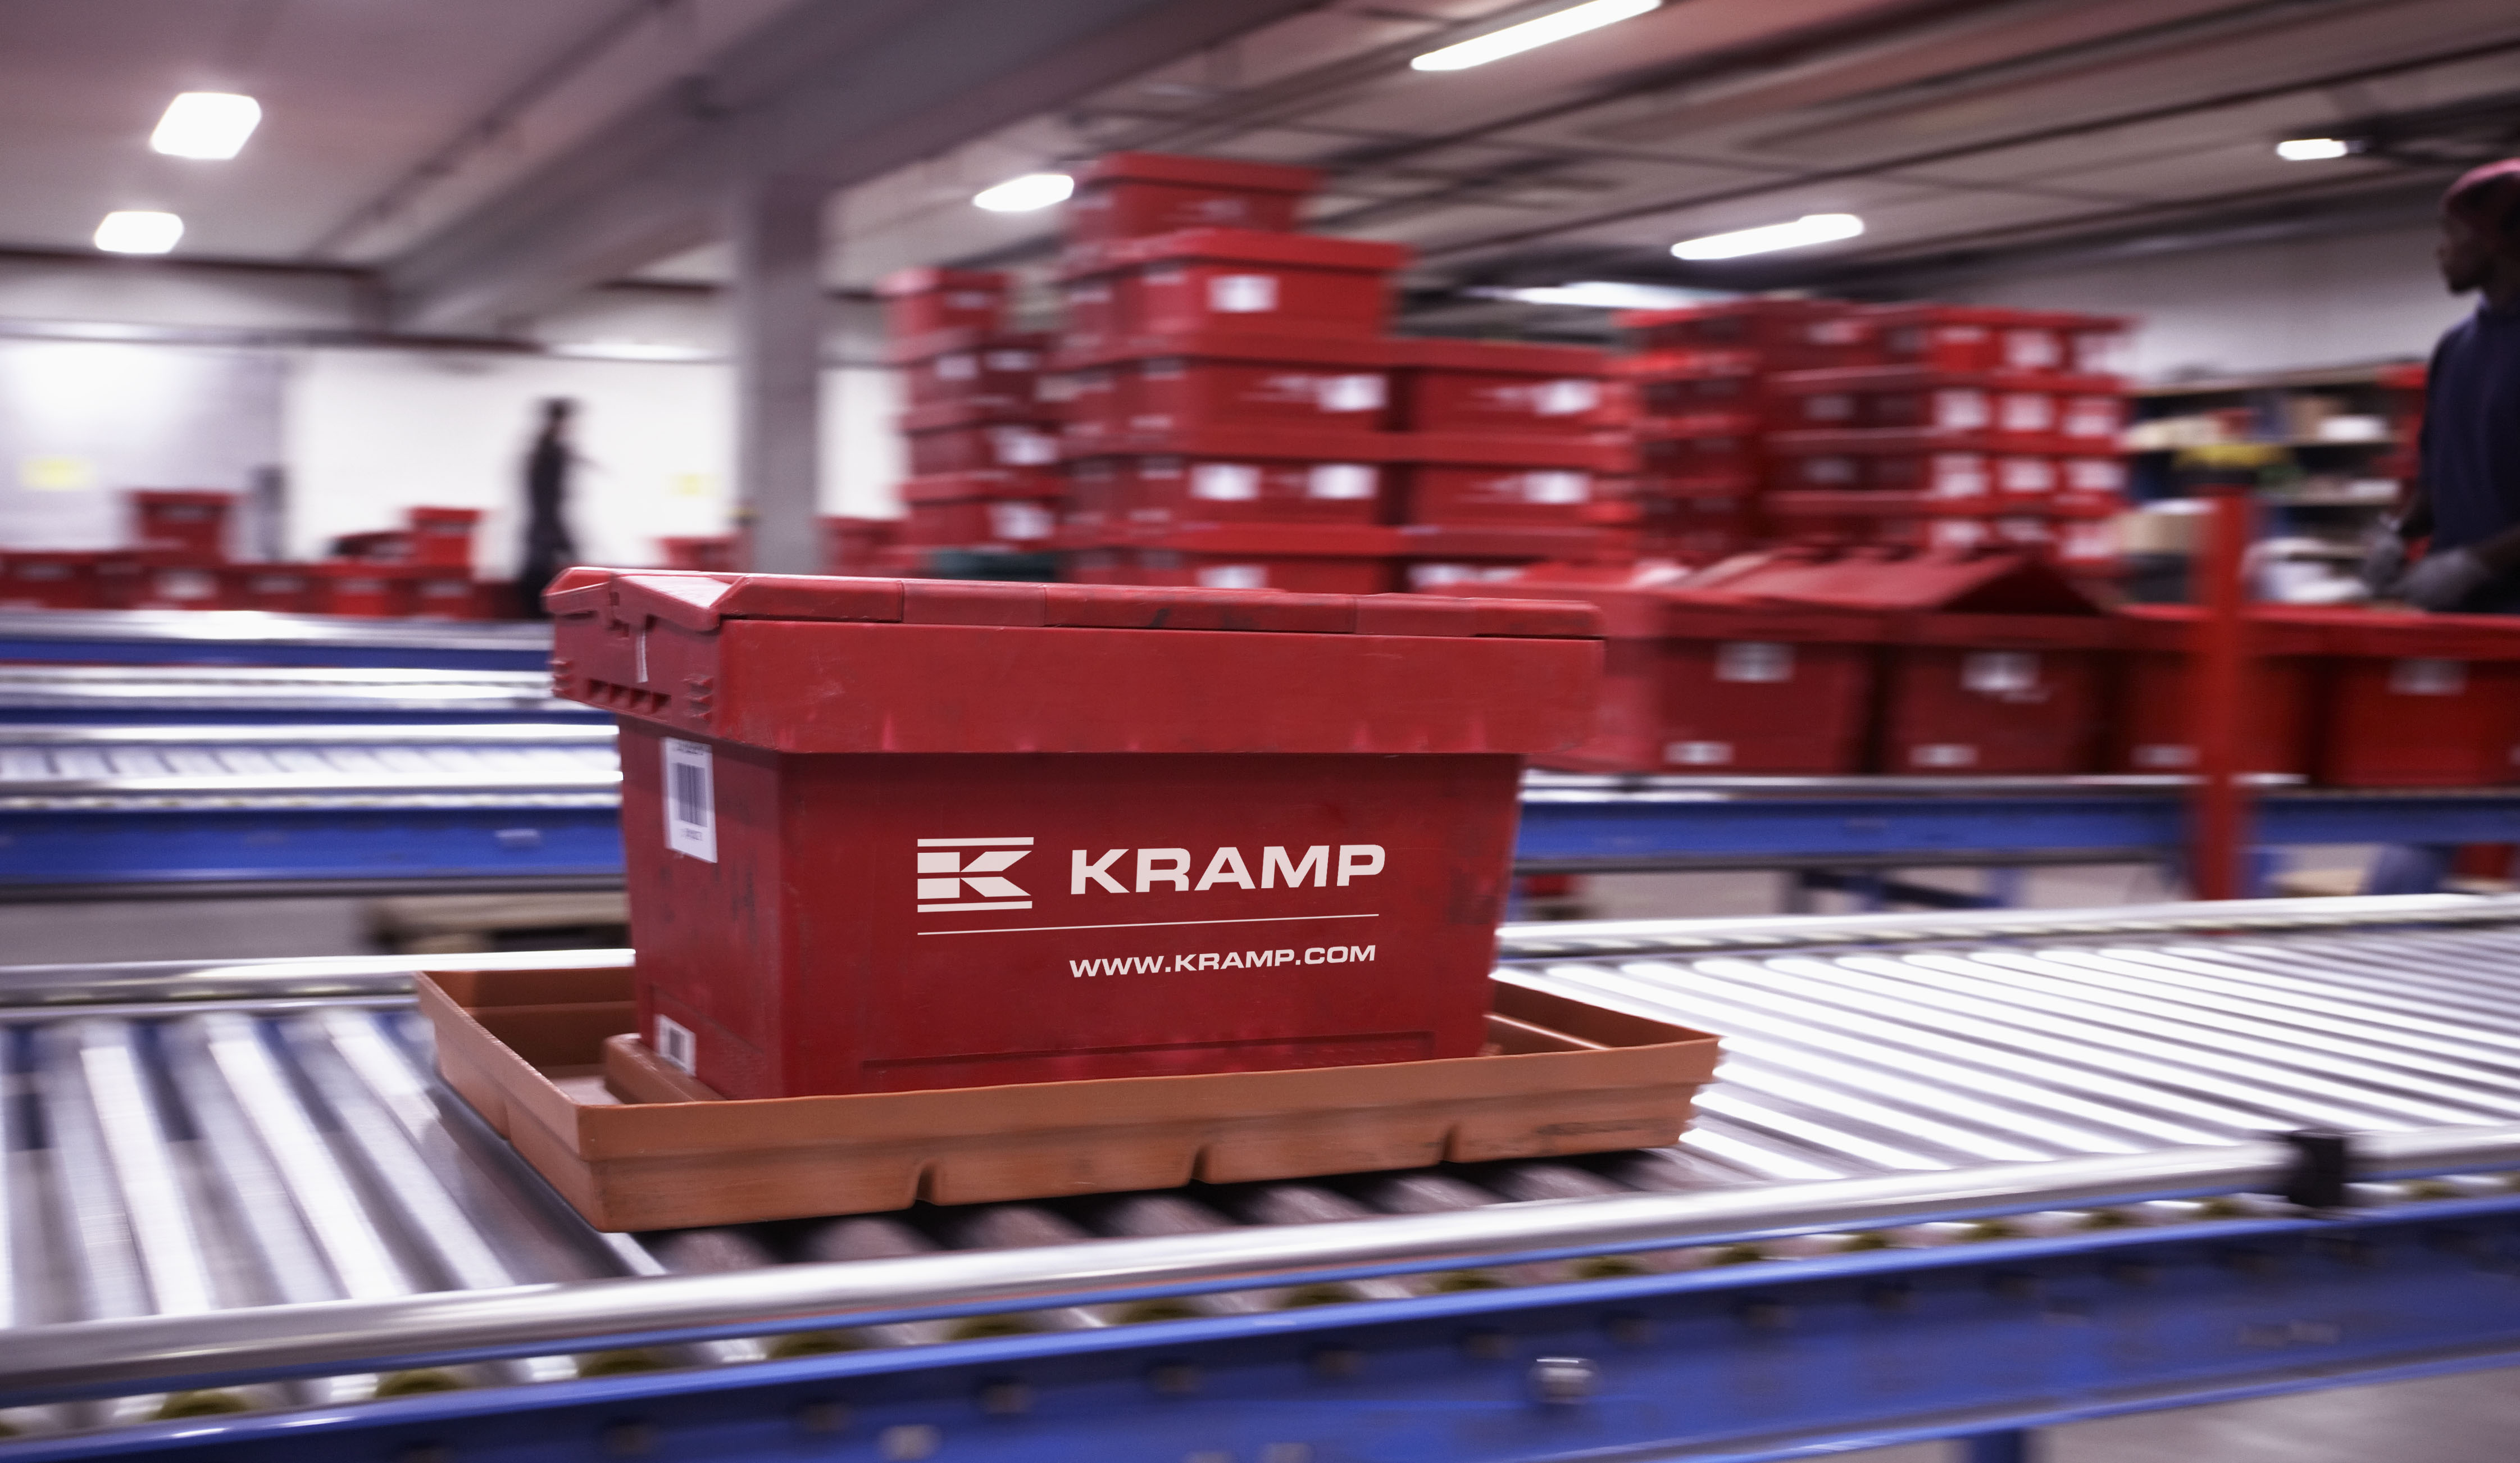 Kramp latin